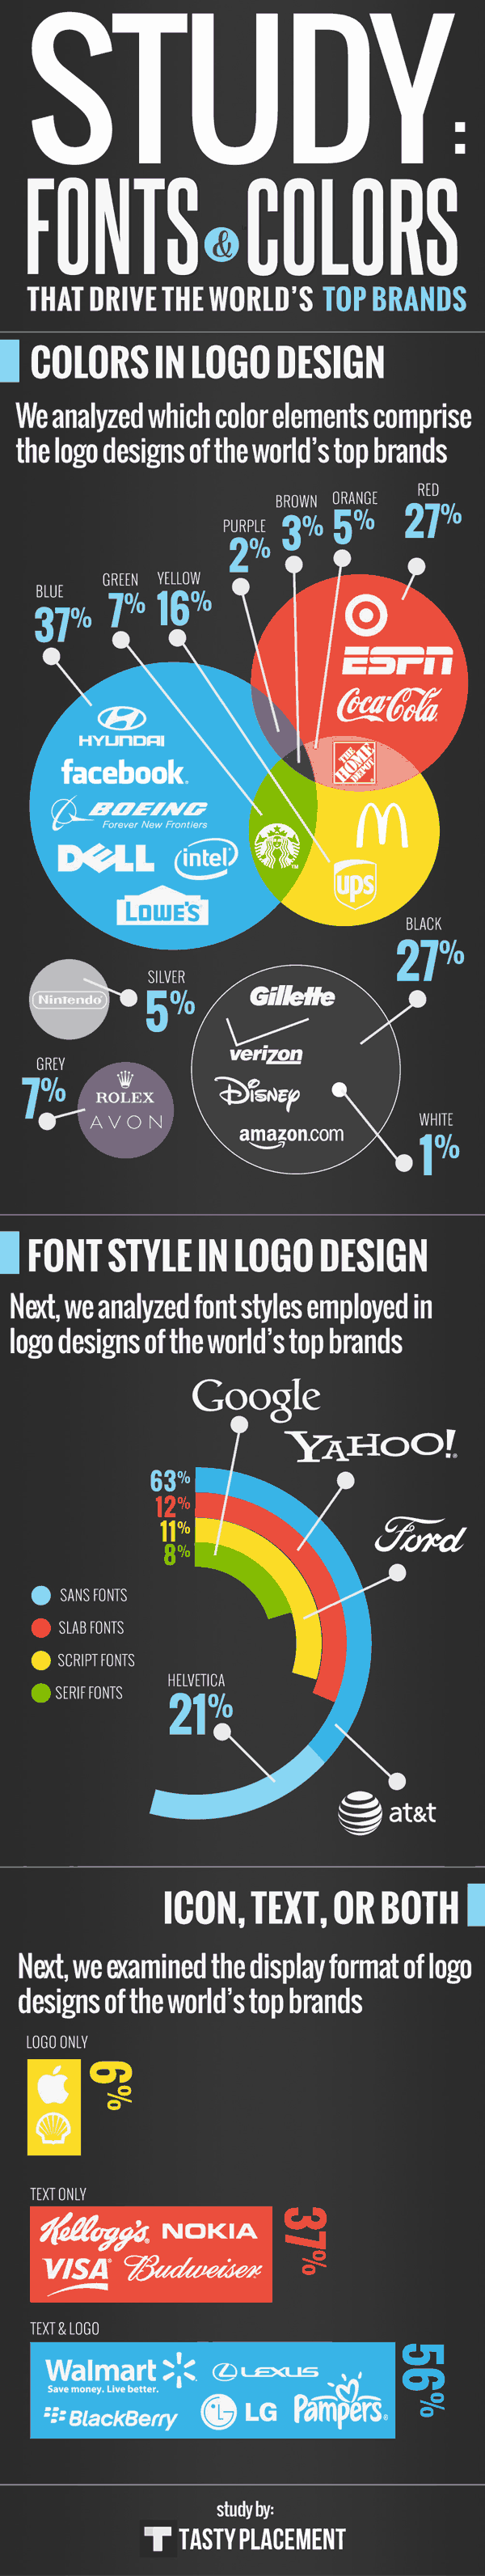 Which Colors Drive Top Brands infographic